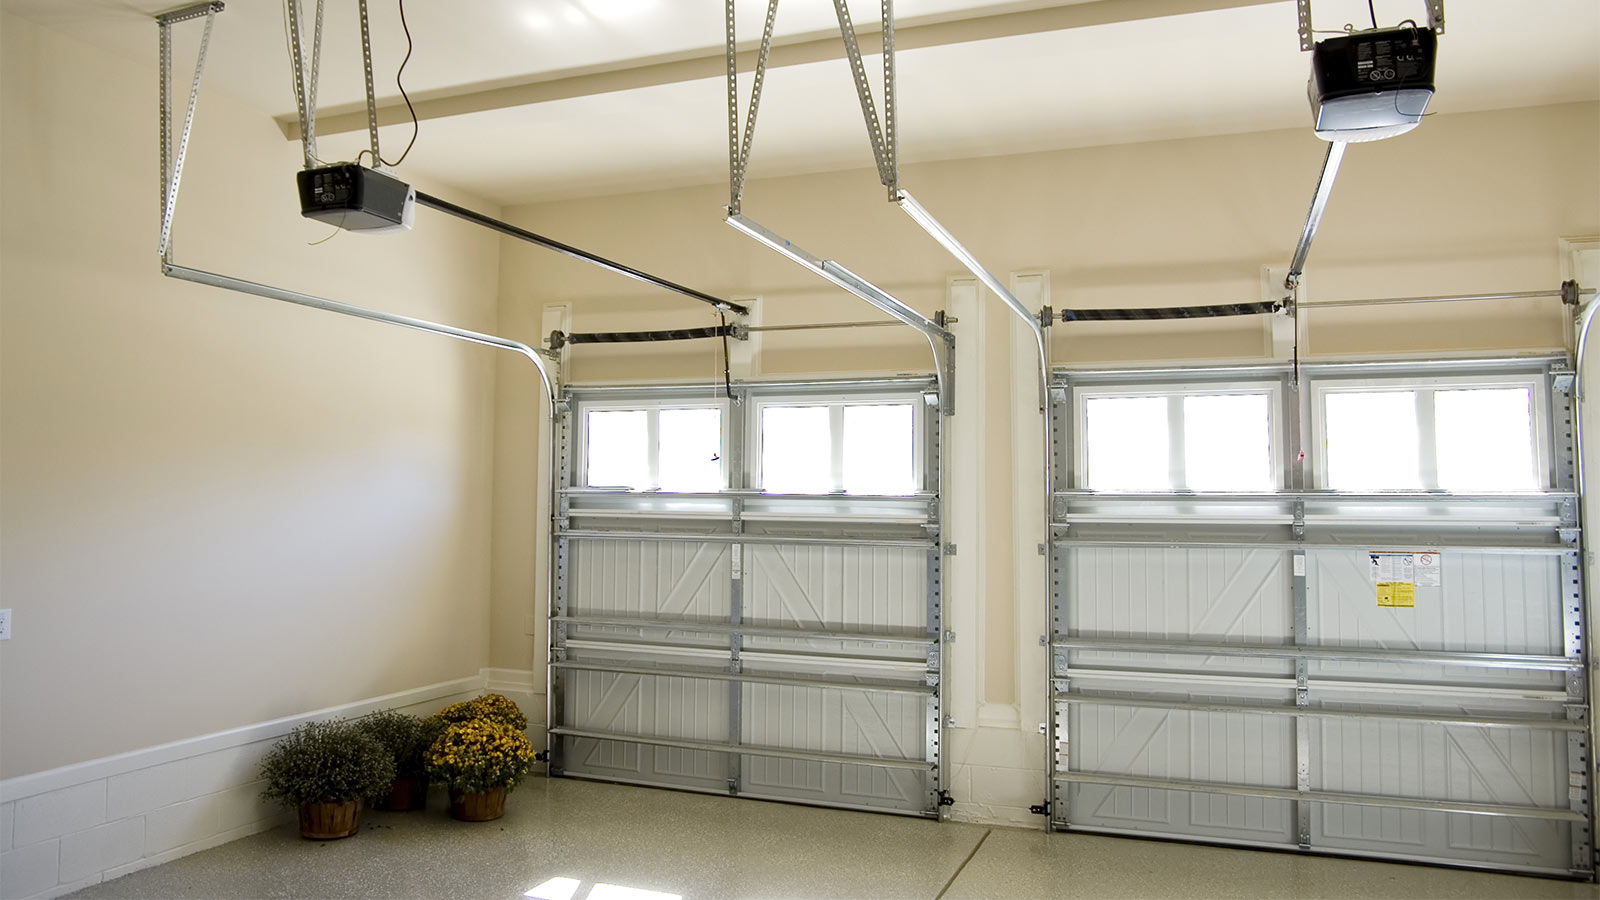 Sectional Garage Doors from Steel Security Doors Romford suppliers.